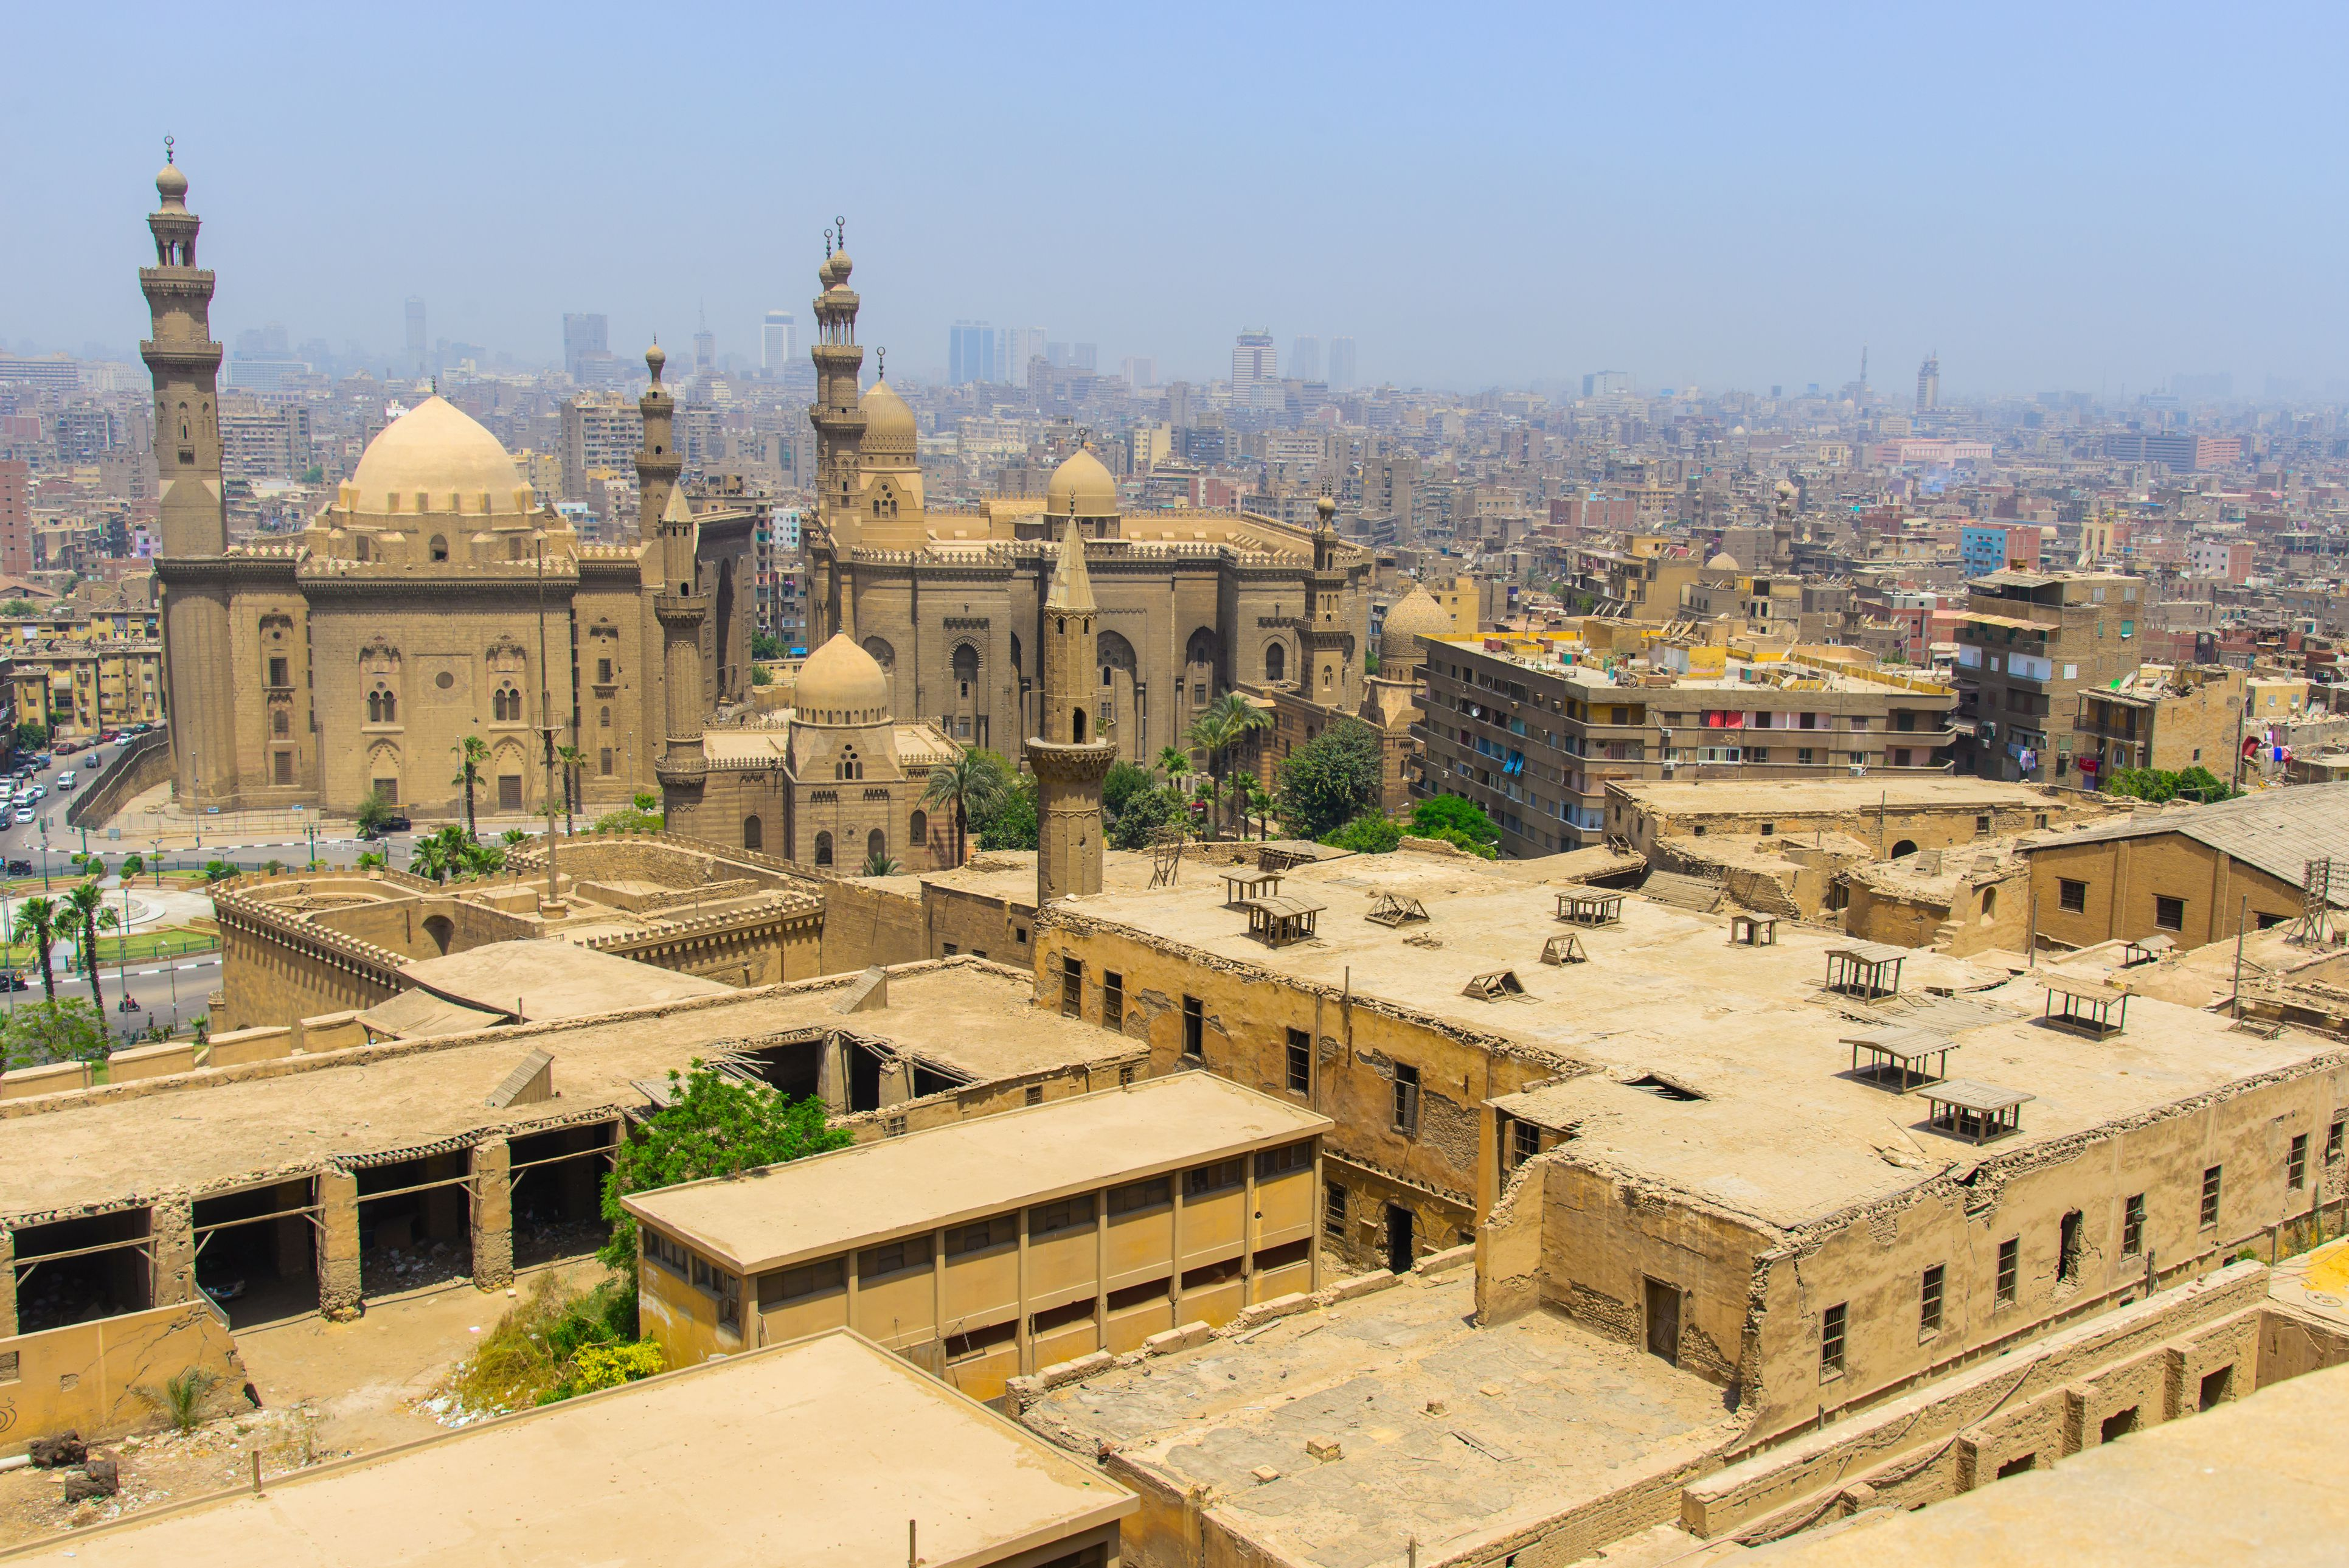 View of Cairo city from Citadel on hazy day.